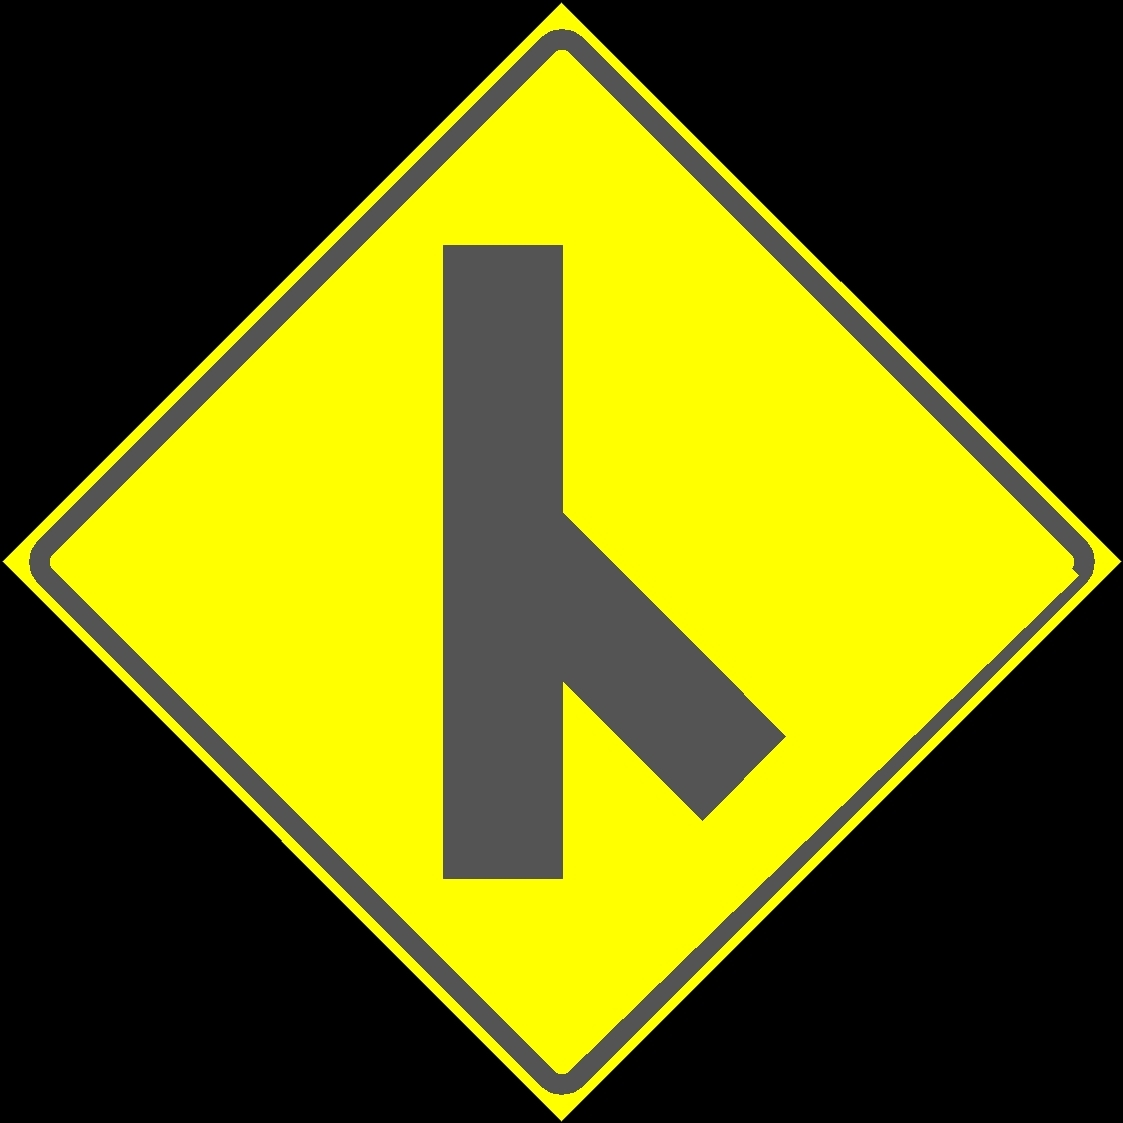 road signs and symbols  caution  warning